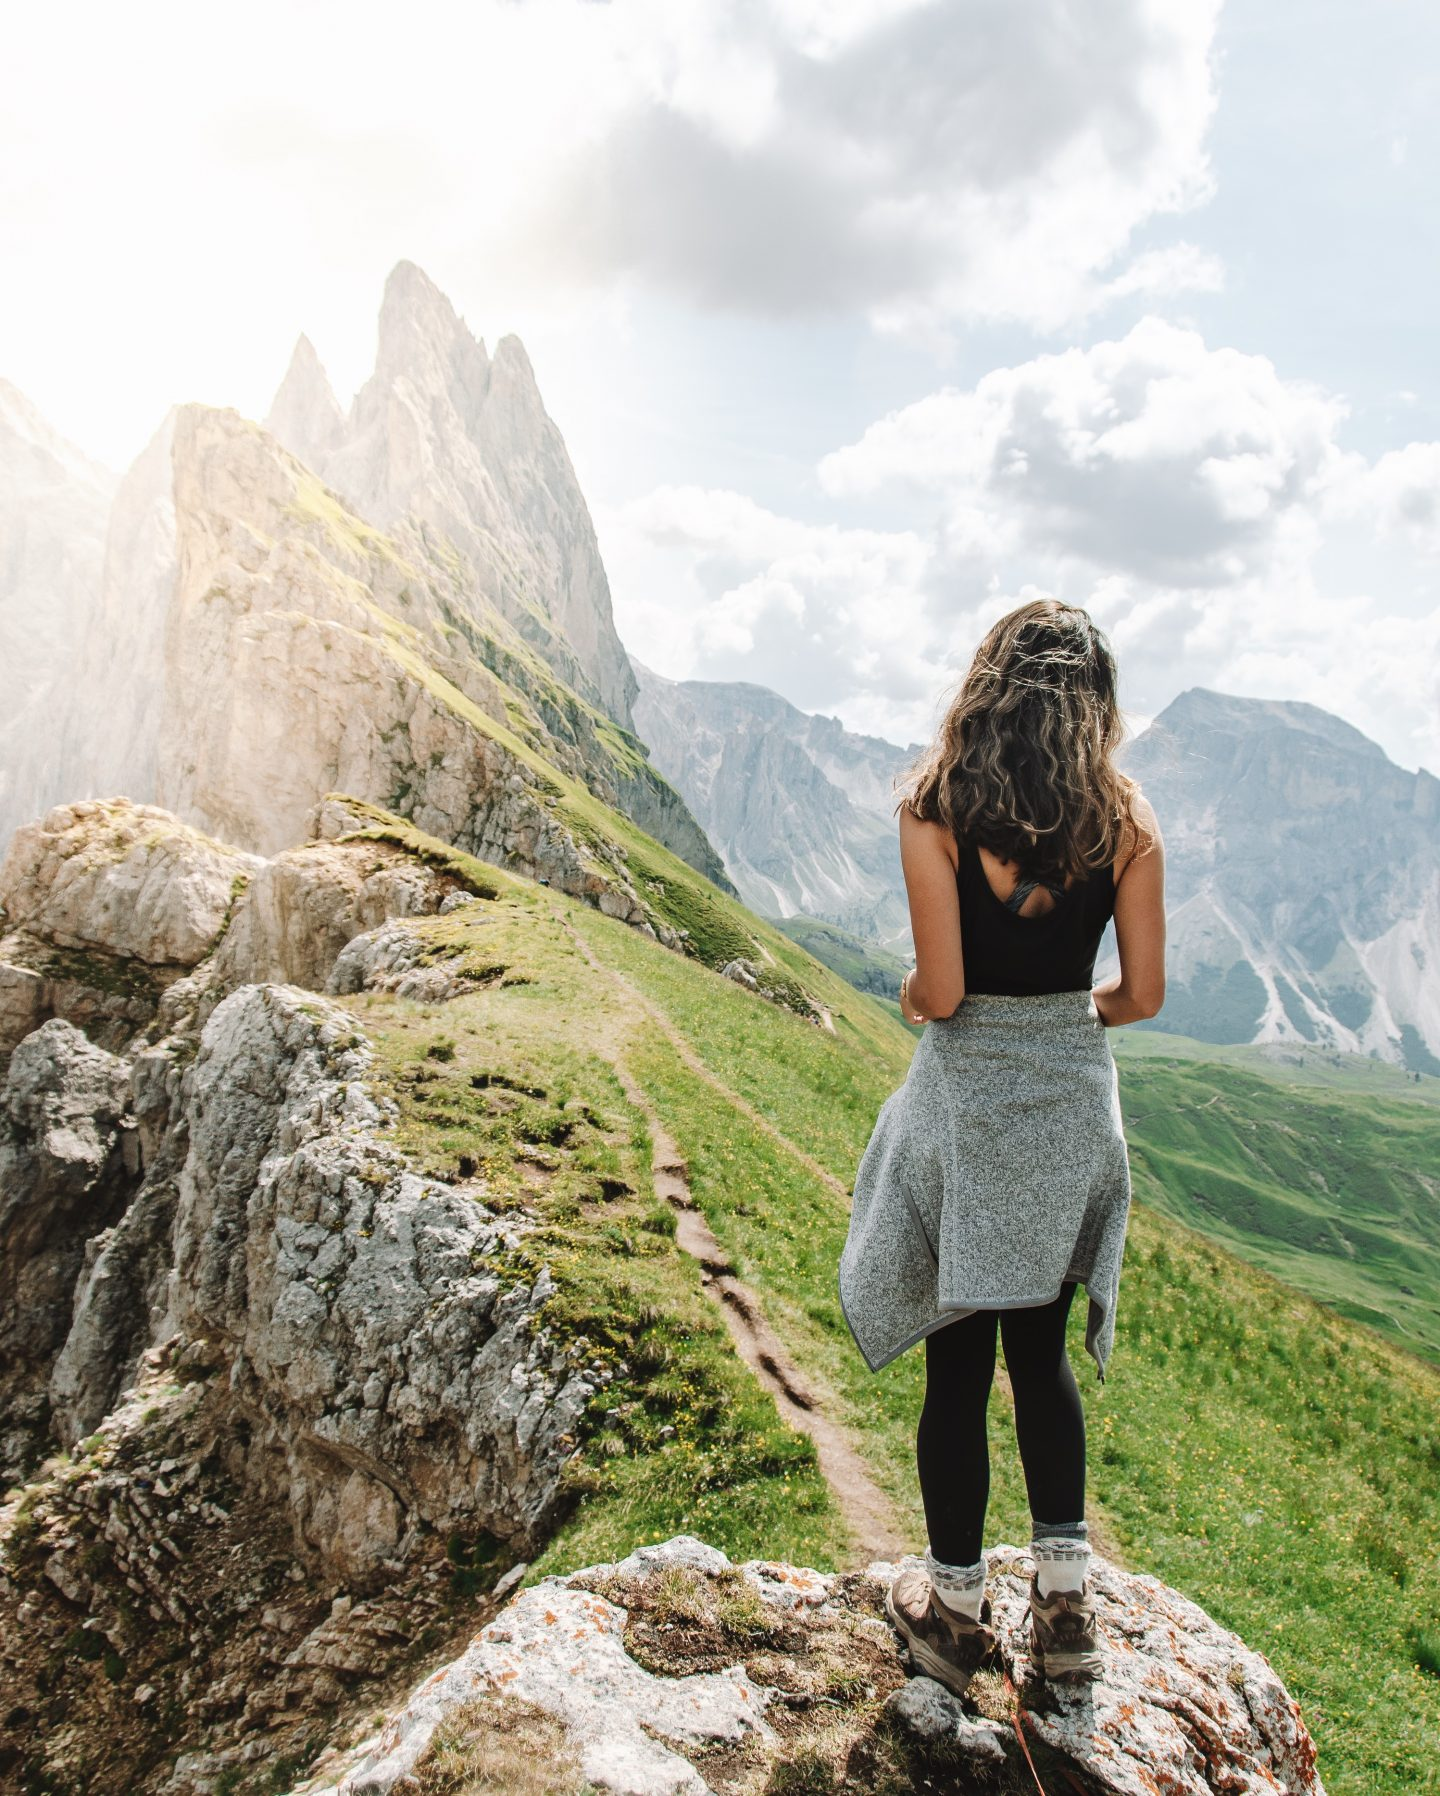 Girl hiking on Seceda mountain in the Dolomites, Italy